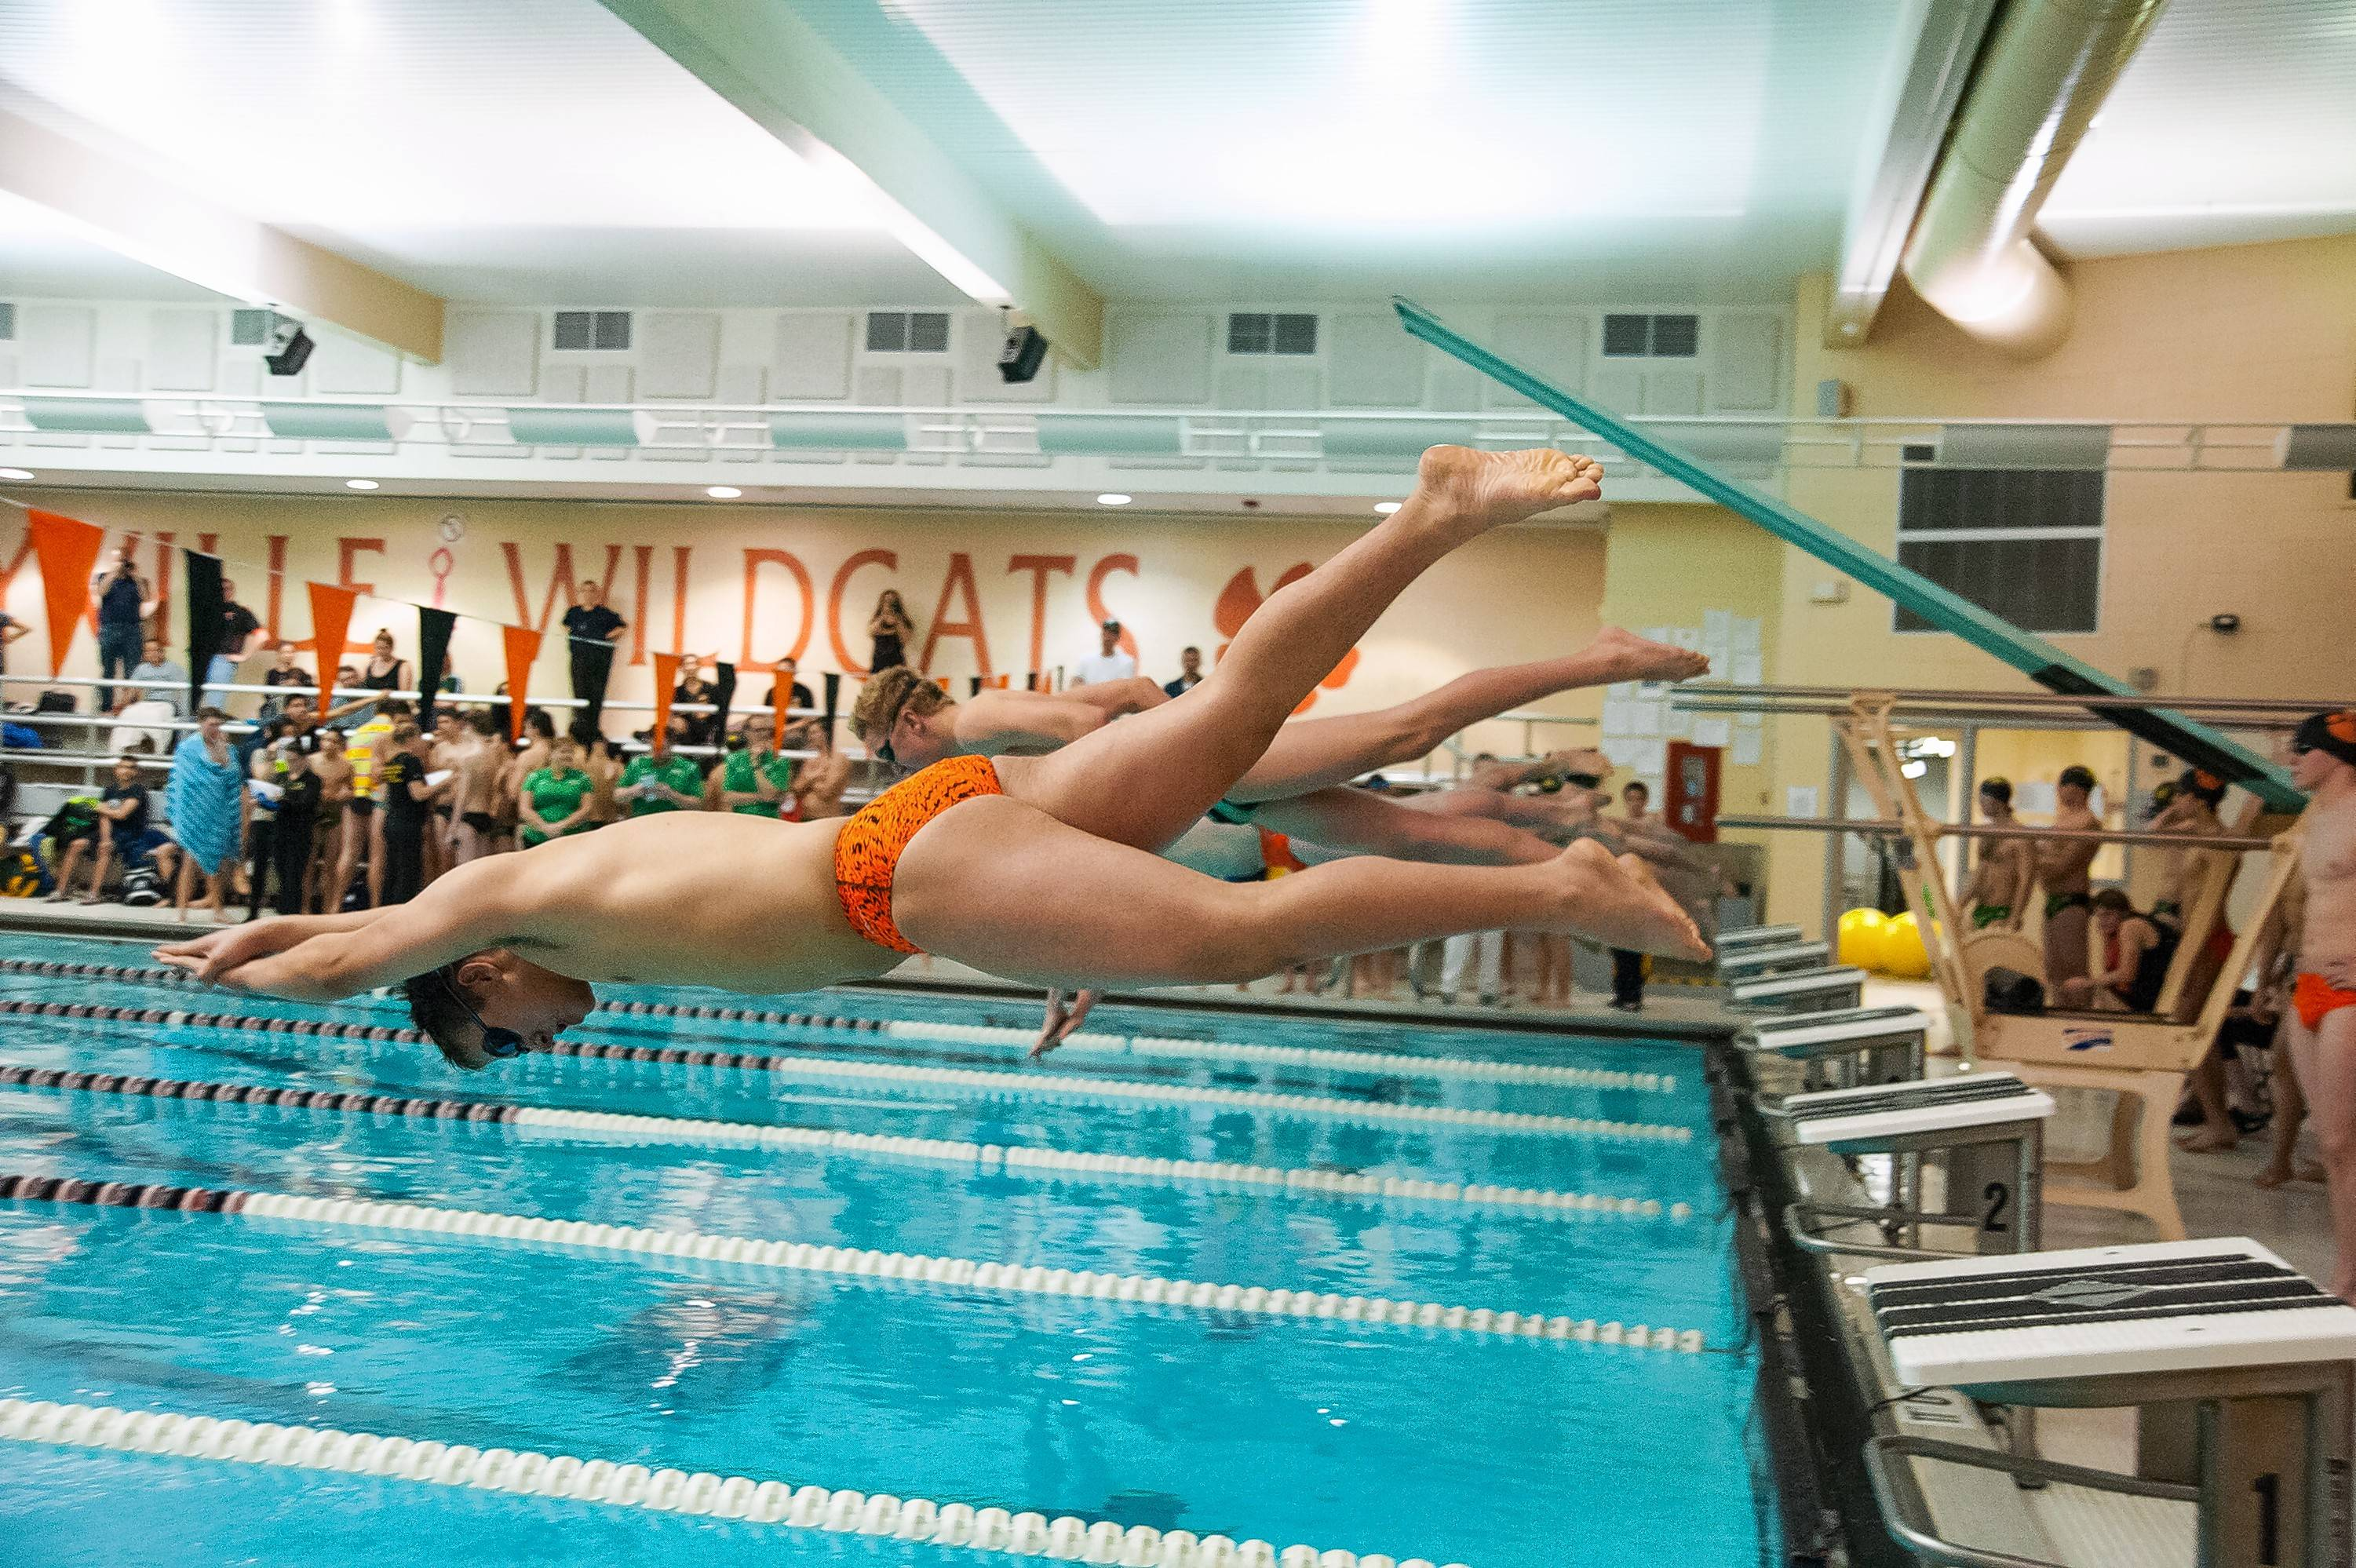 Money to replace Libertyville High School's swimming pool is included in the proposed budget for the 2017 fiscal year, but the project's future isn't certain because of greater financial issues.